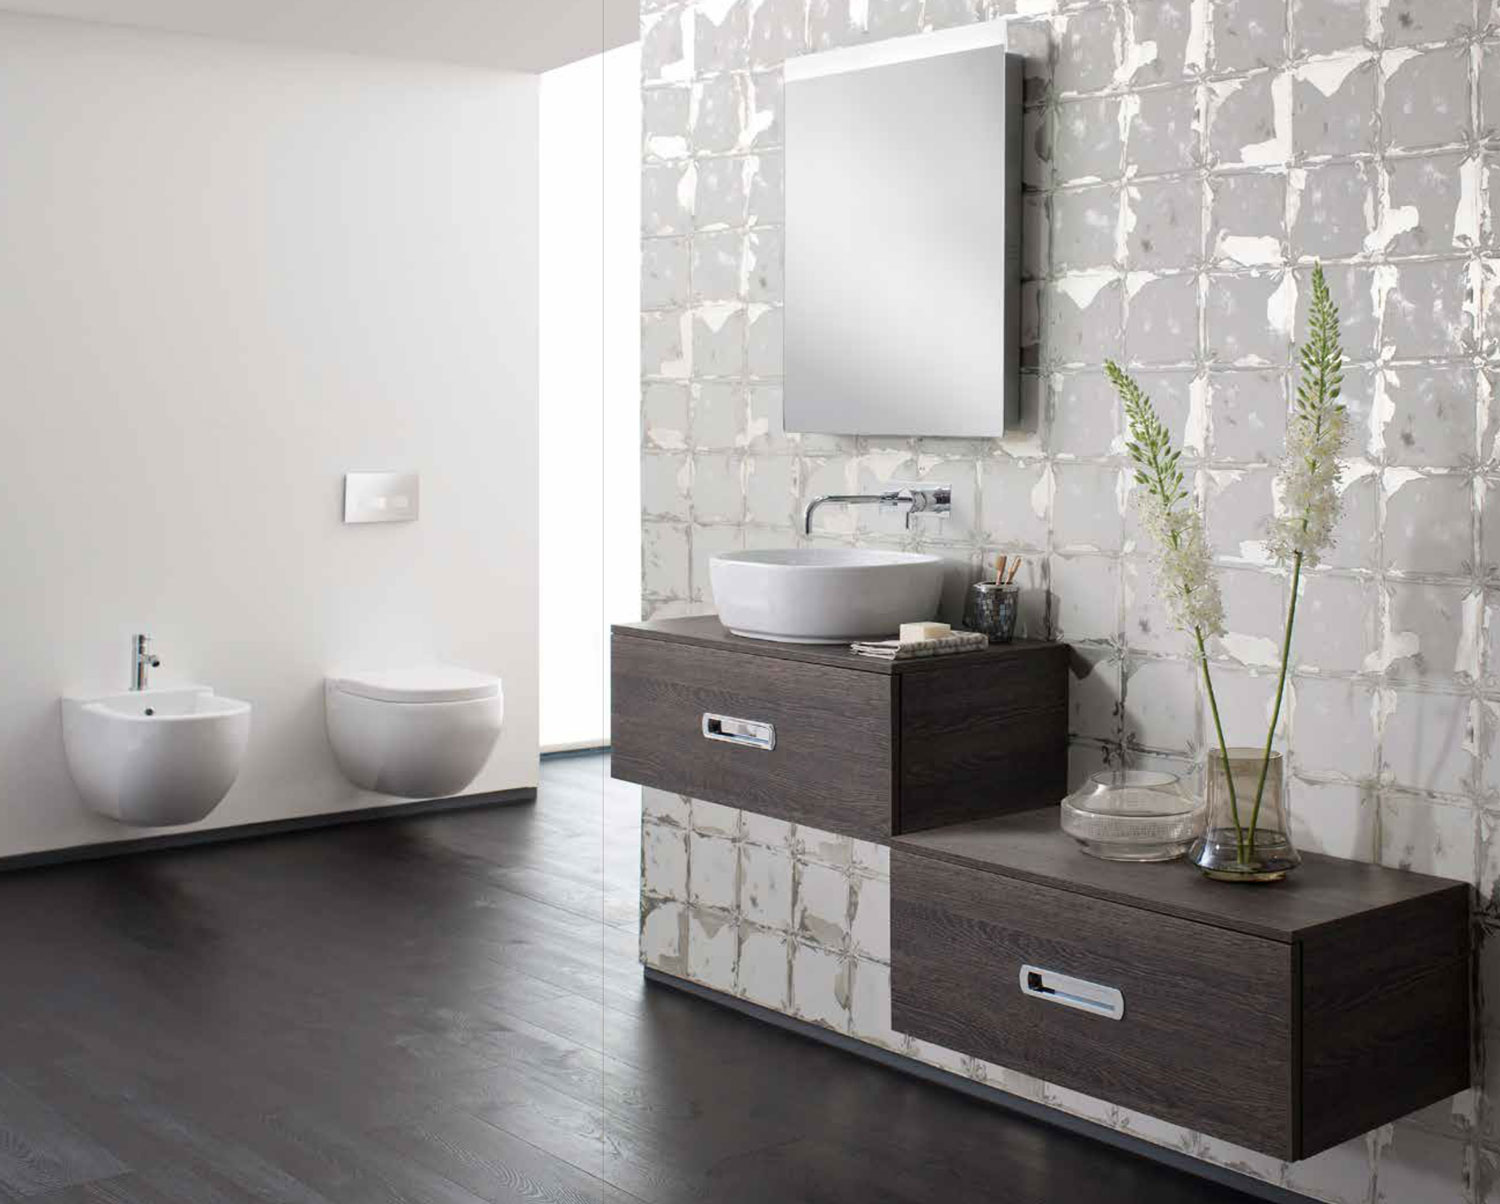 Three simple steps to creating a boutique hotel bathroom